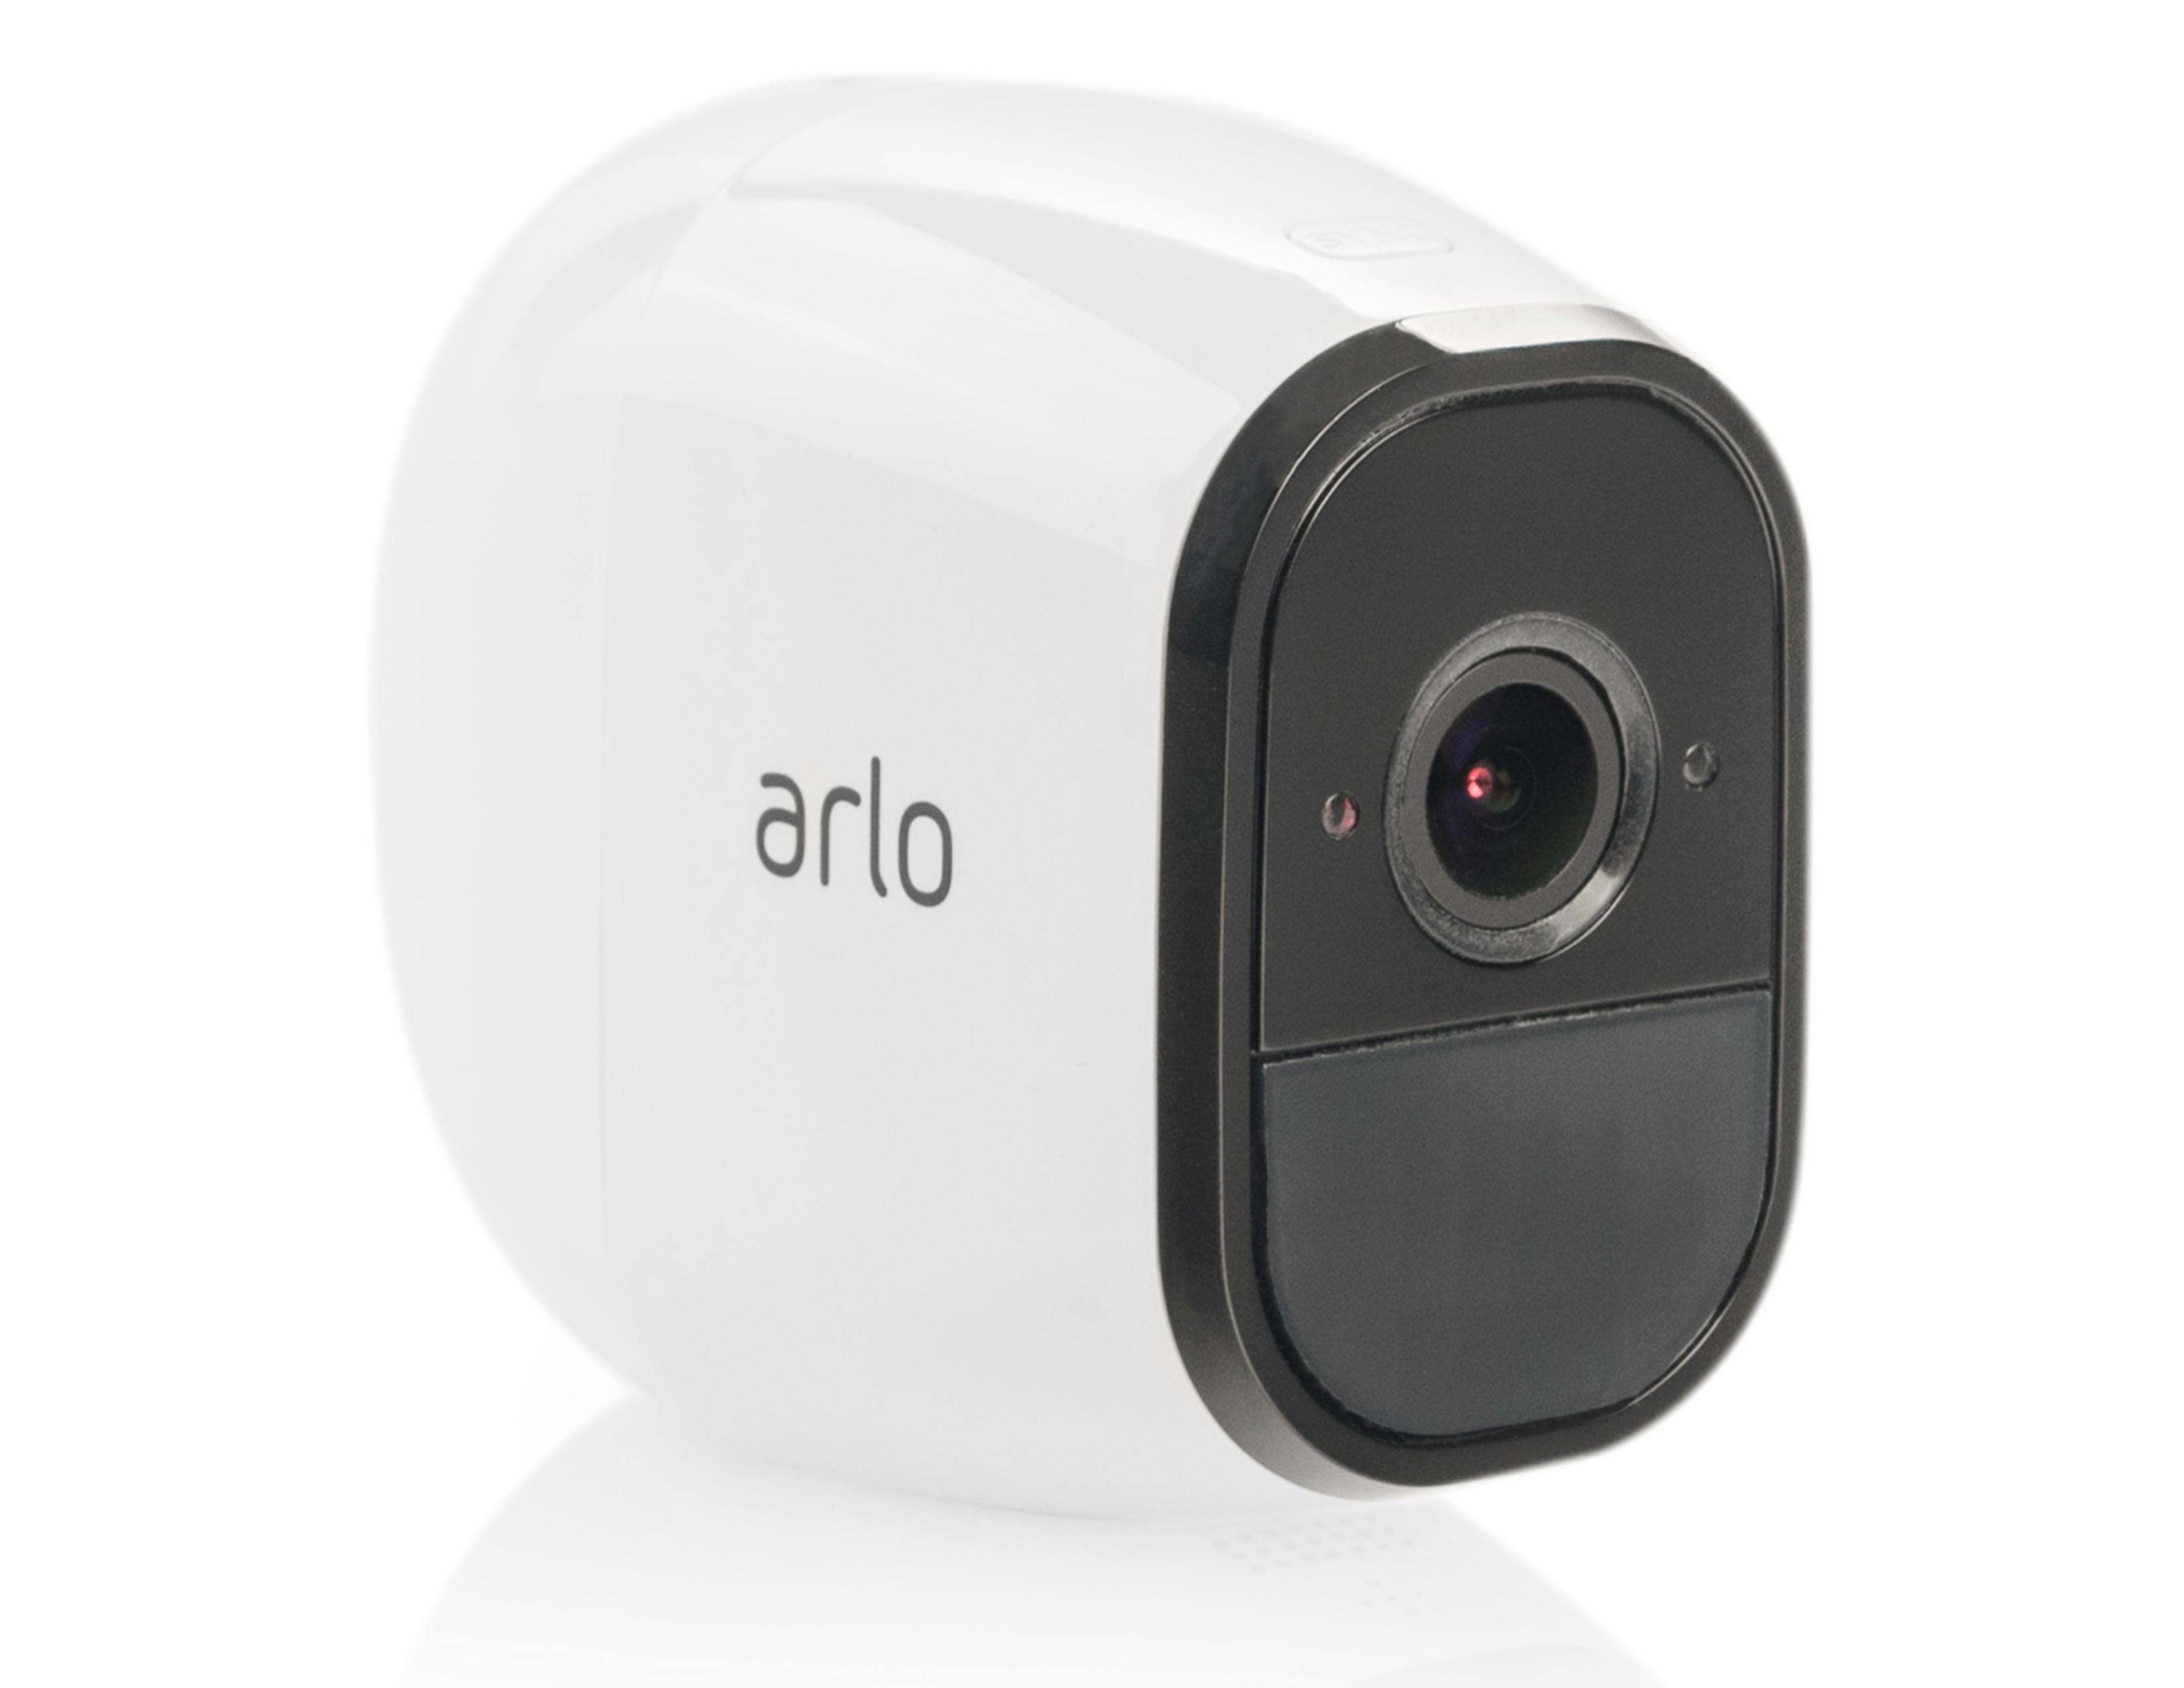 arlo pro renewed wireless home security. Black Bedroom Furniture Sets. Home Design Ideas